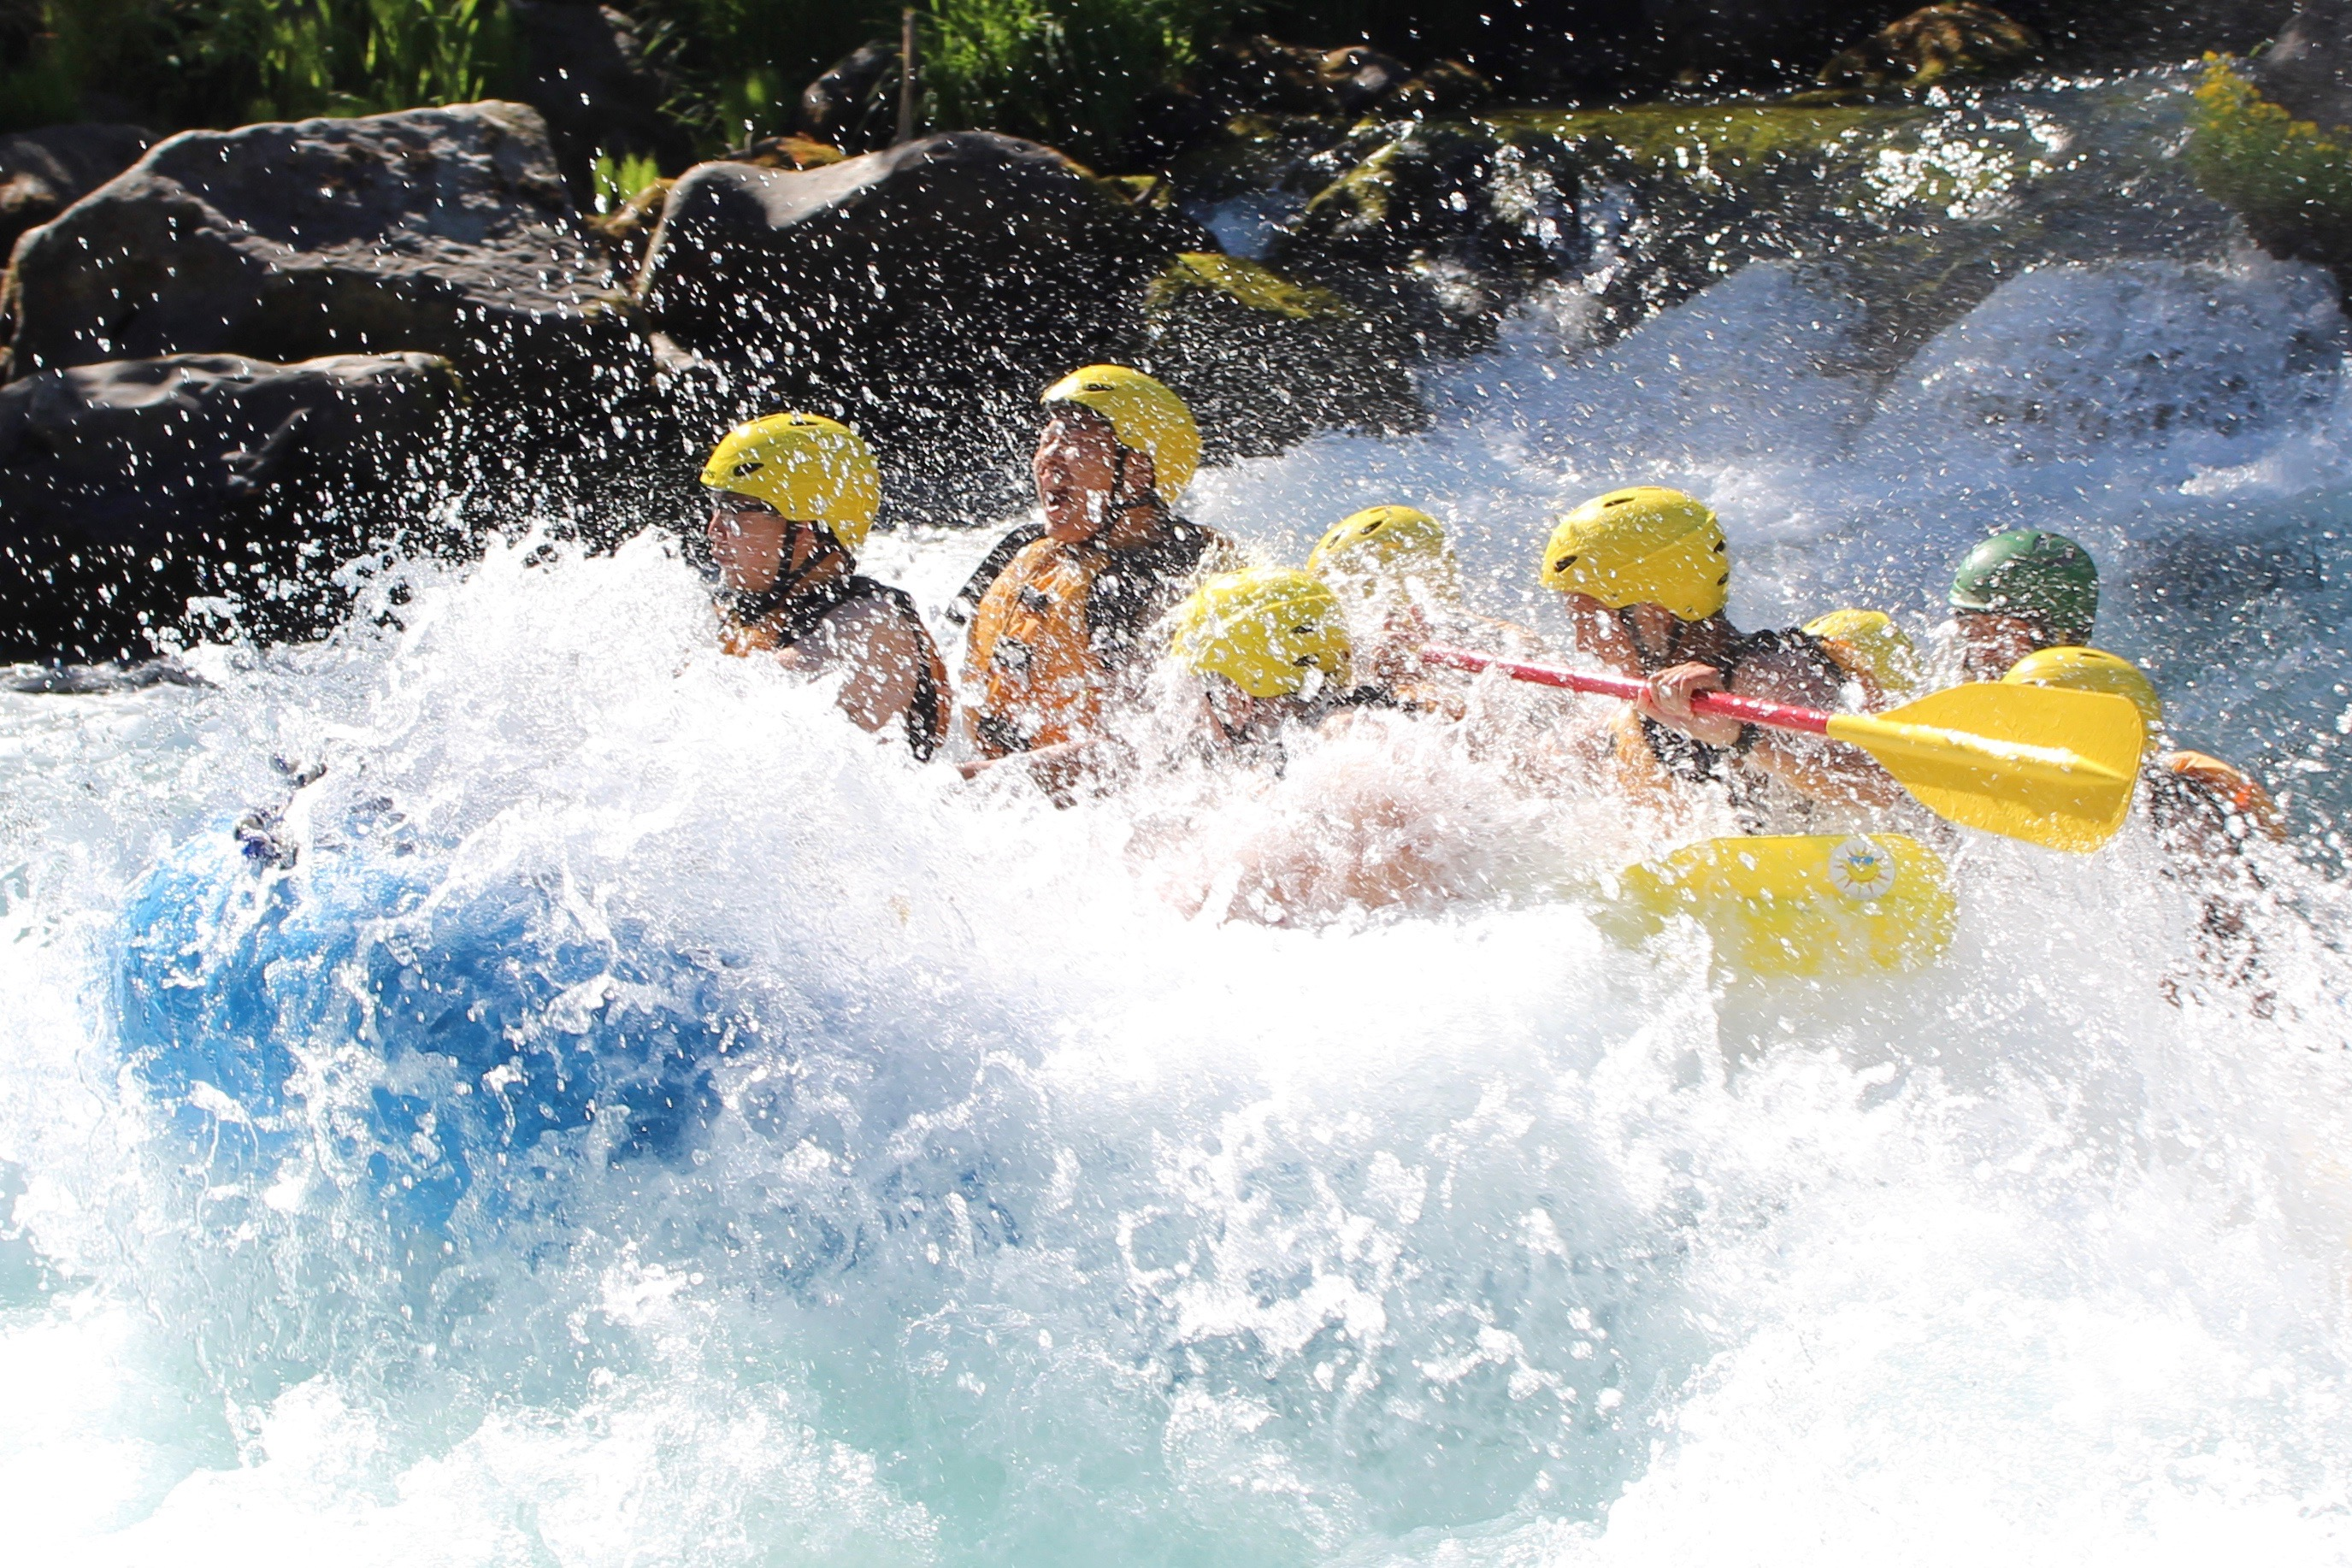 Exciting White Water Adventure!